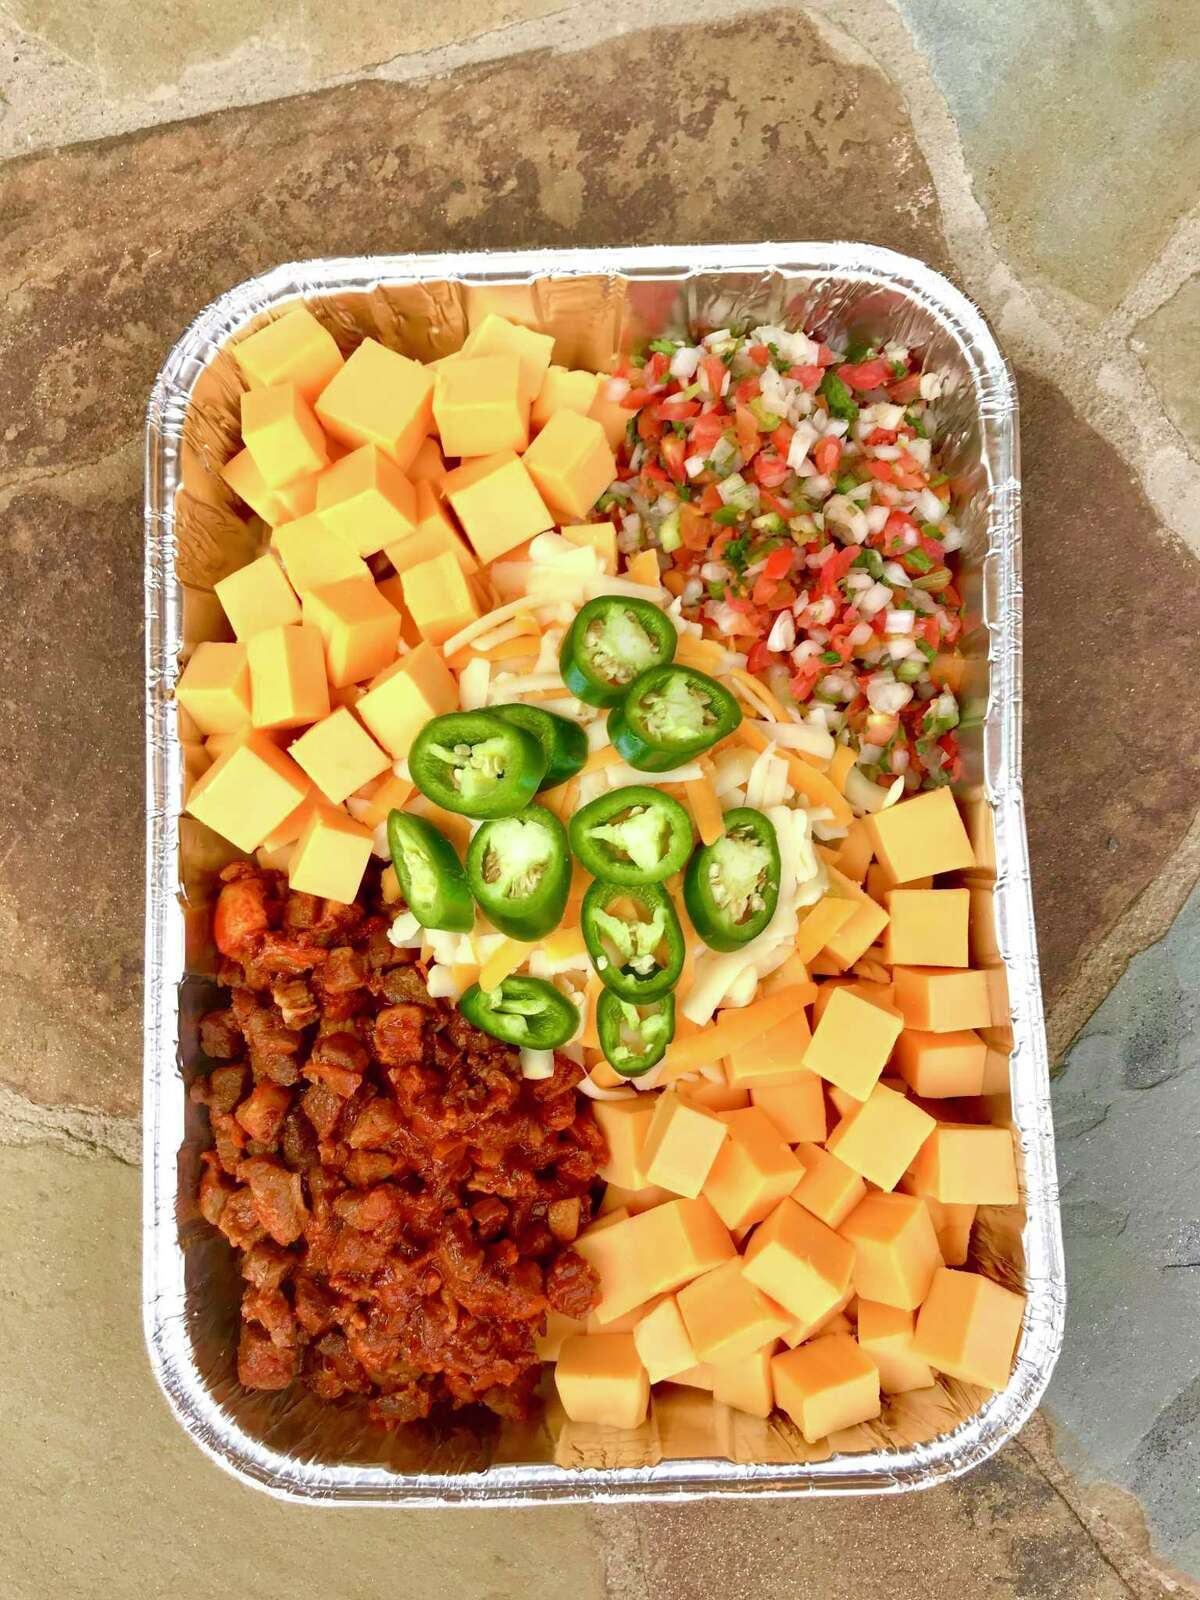 The smoked queso trend is simple: arrange ingredients for queso in a disposable aluminum pan or cast-iron skillet and place in a smoker or on the grill. Let the heat melt the queso.